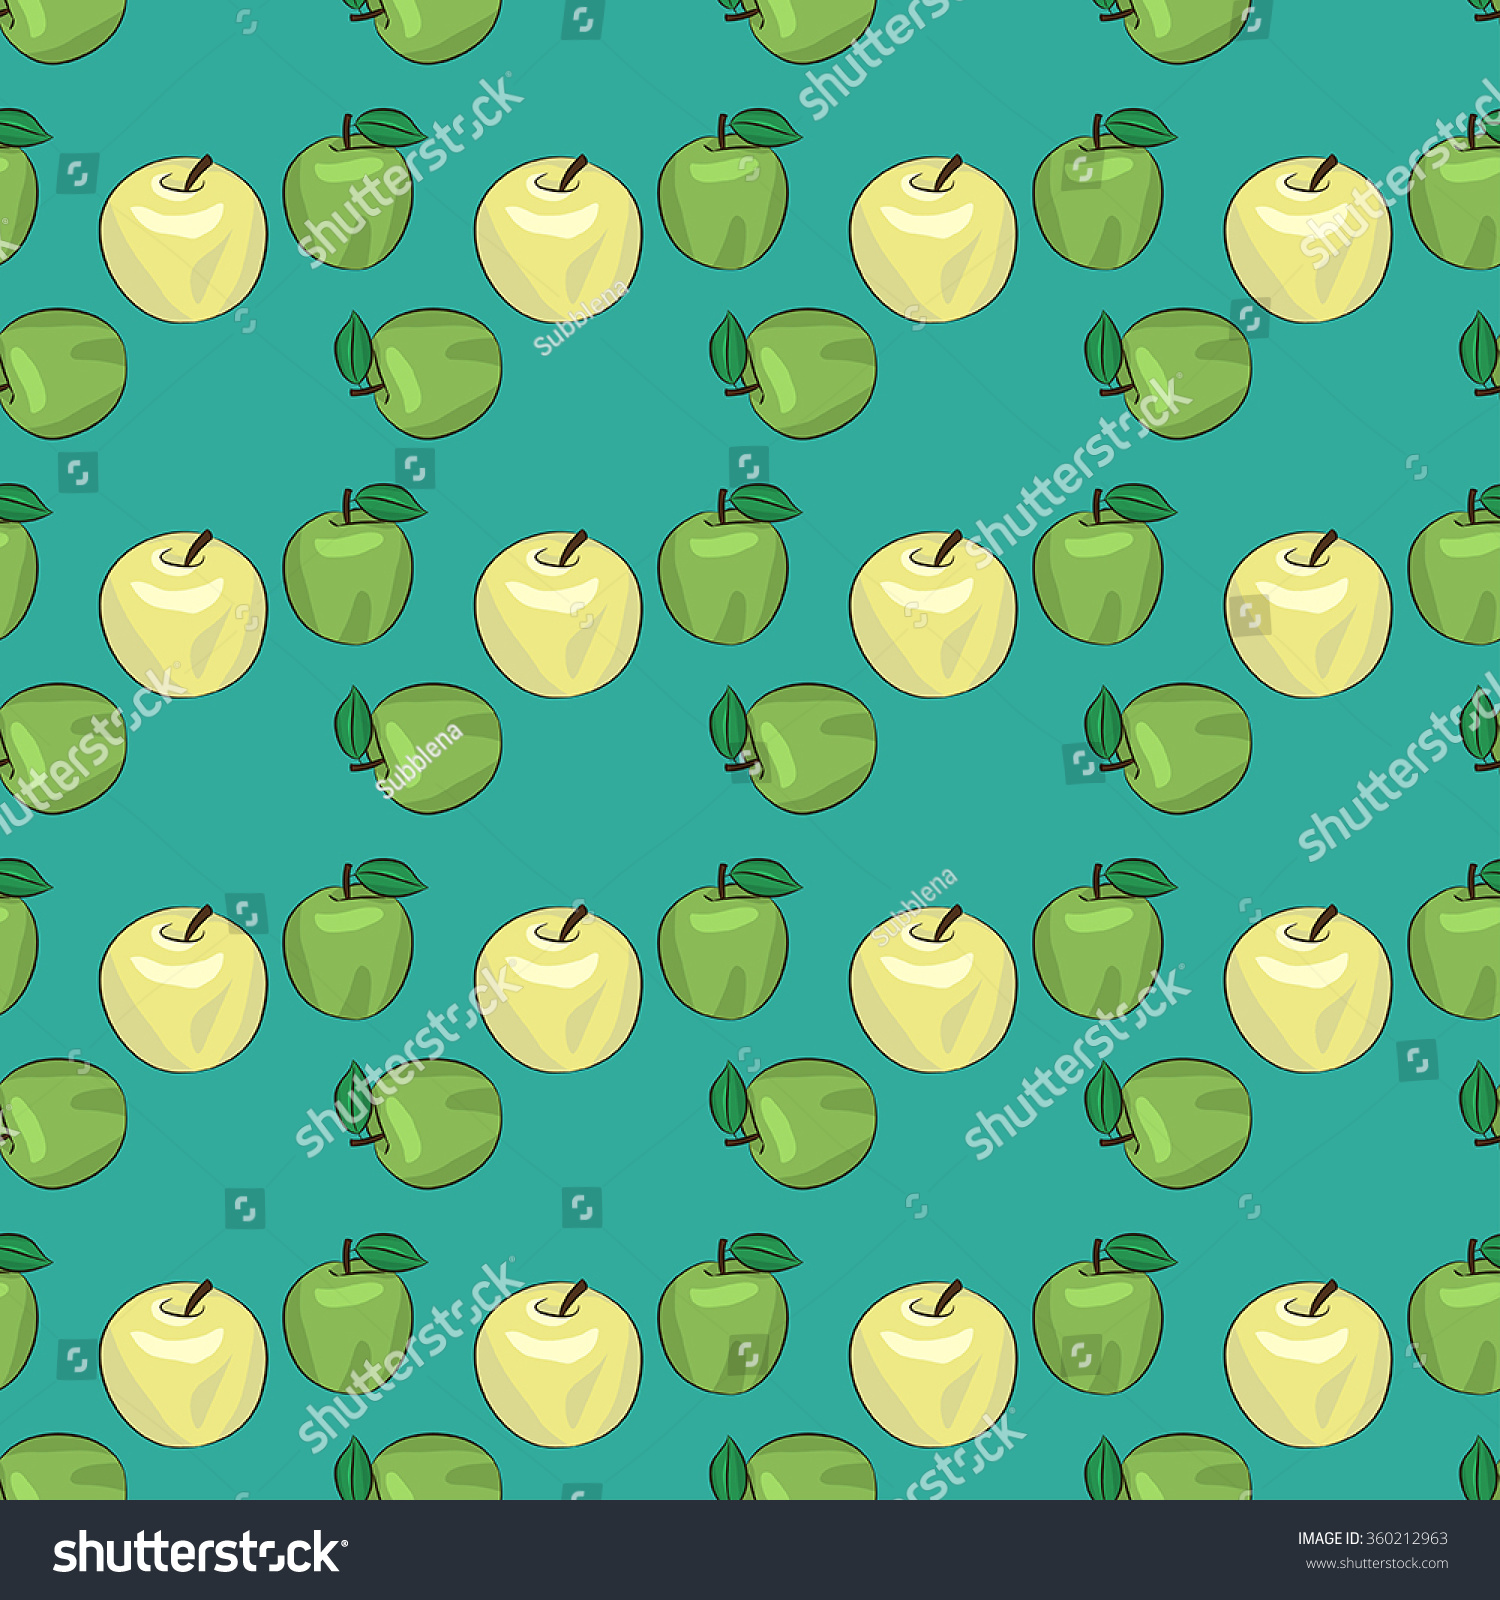 Seamless Vector Pattern With Apples Green Background